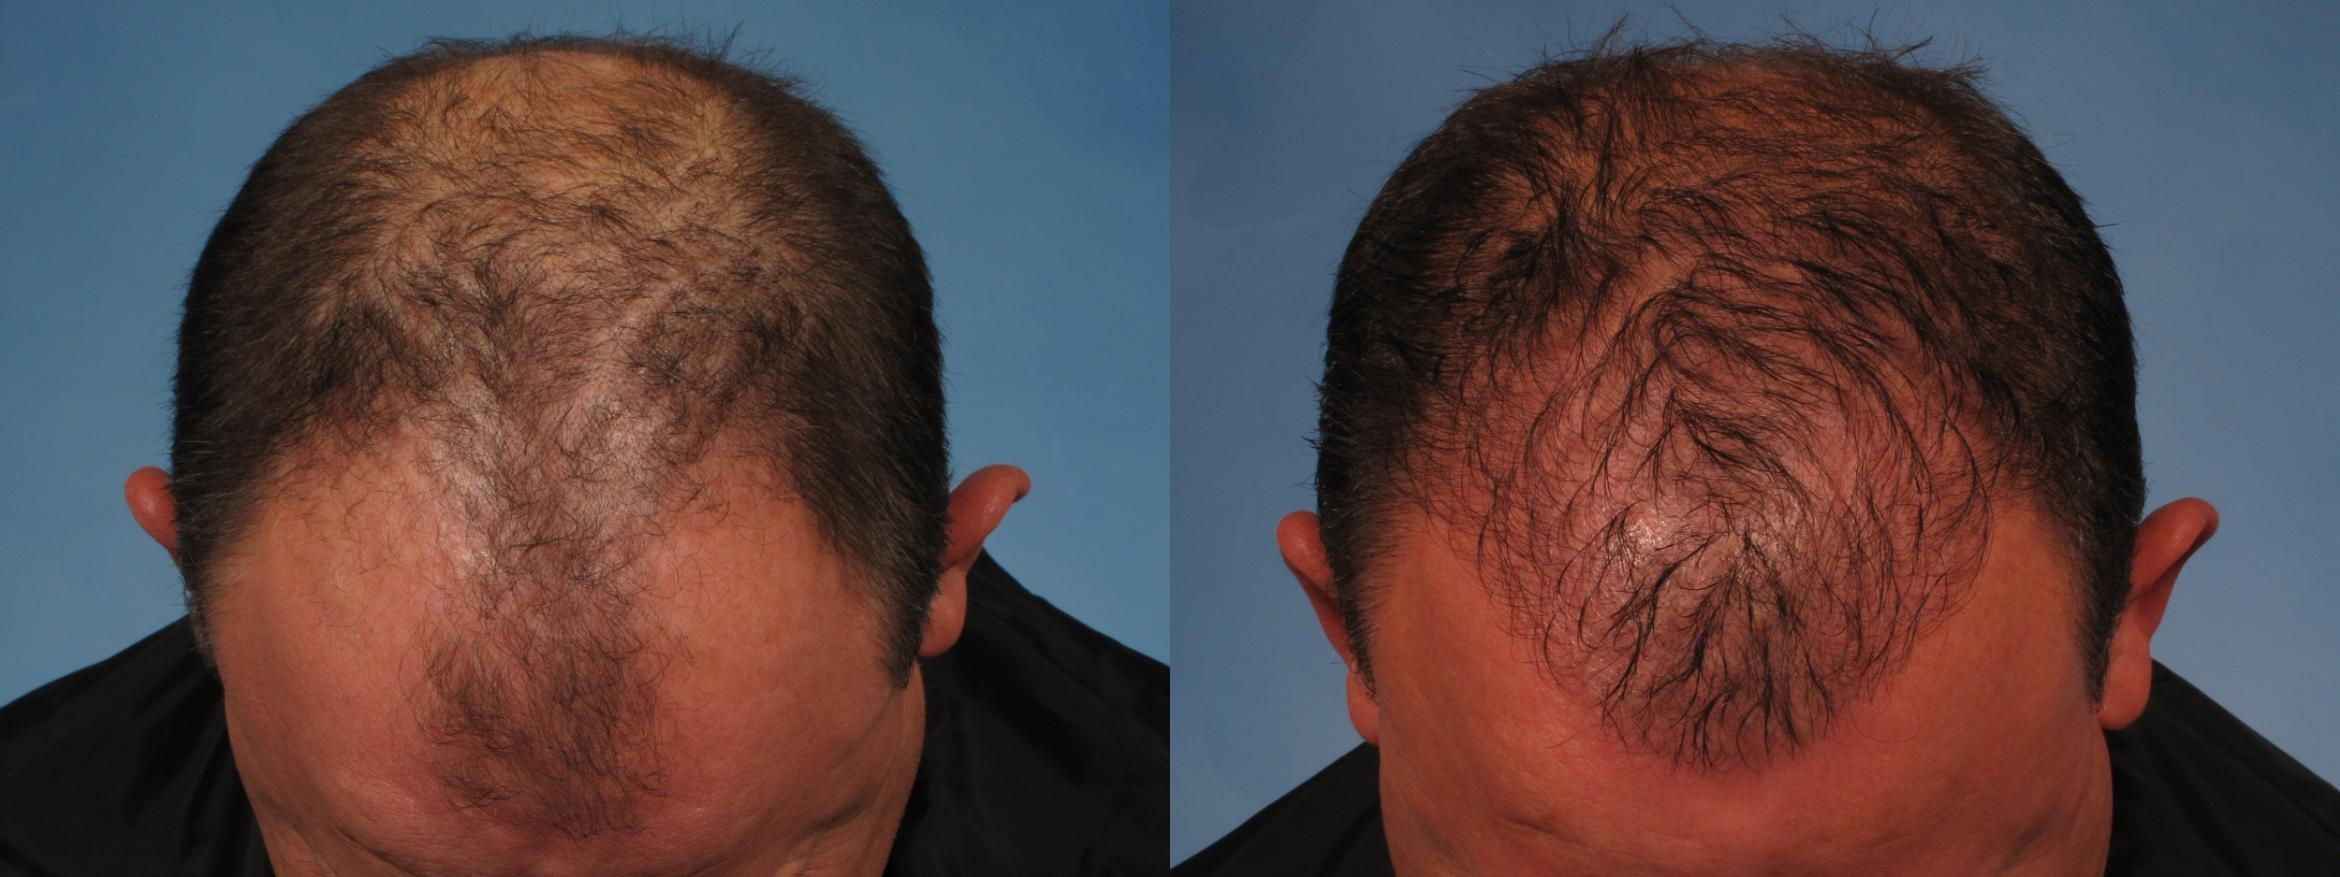 Hair Restoration Case 275 Before & After View #1 | Naples, FL | Kent V. Hasen, M.D.